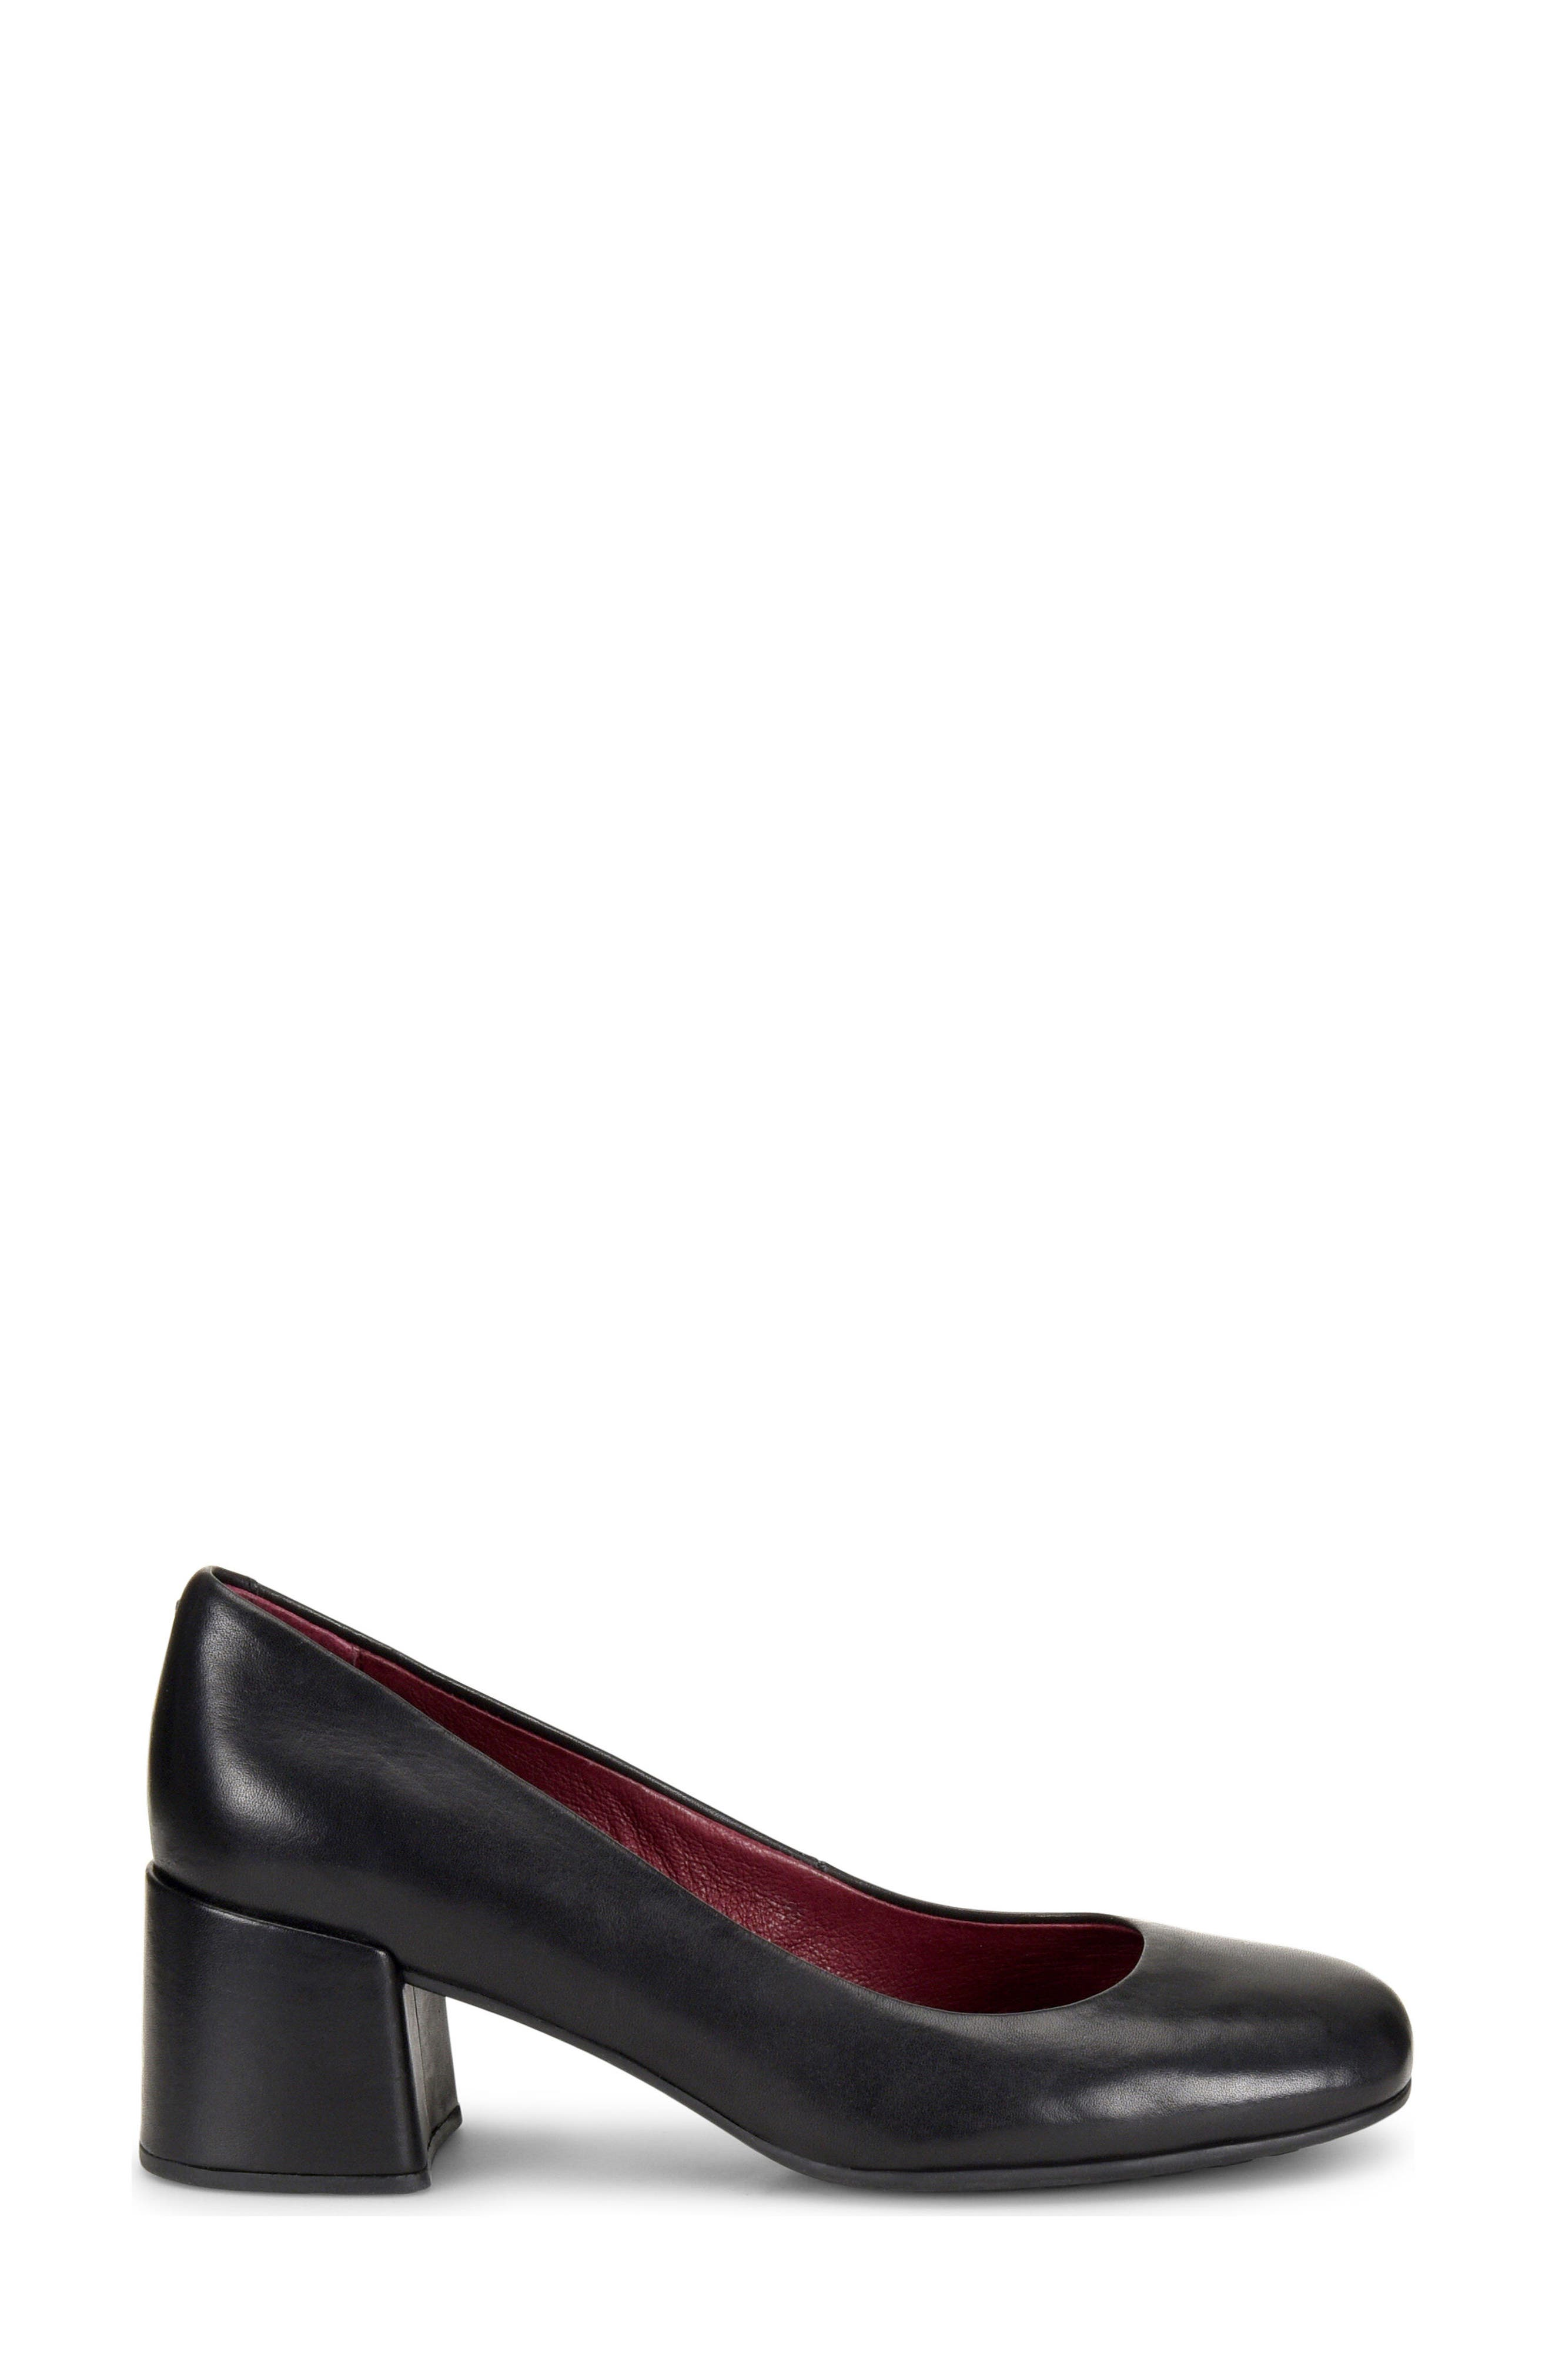 Magnolia Block Heel Pump,                             Alternate thumbnail 3, color,                             BLACK LEATHER